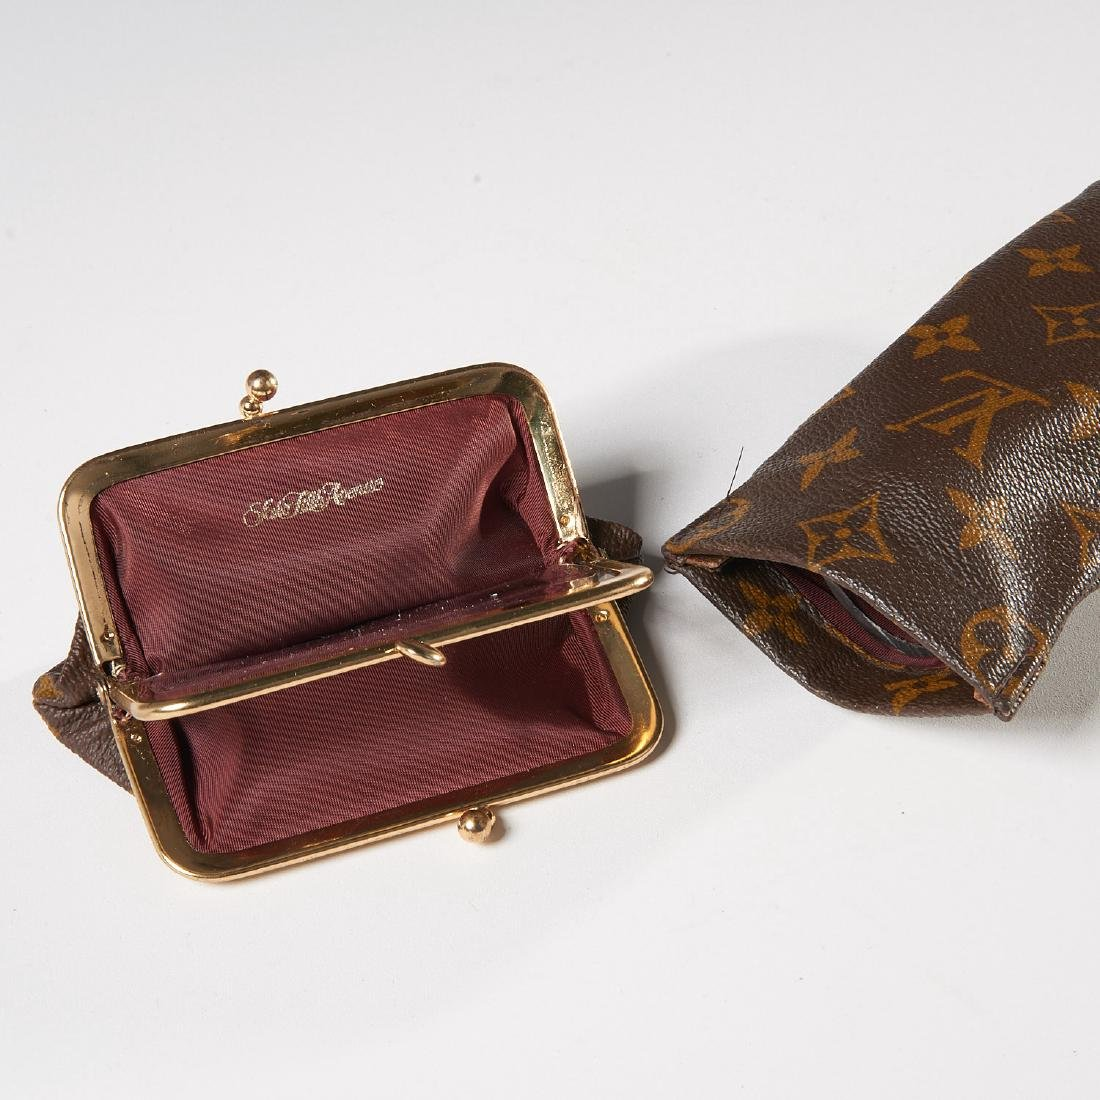 Group of Louis Vuitton Monogram accessories - 2